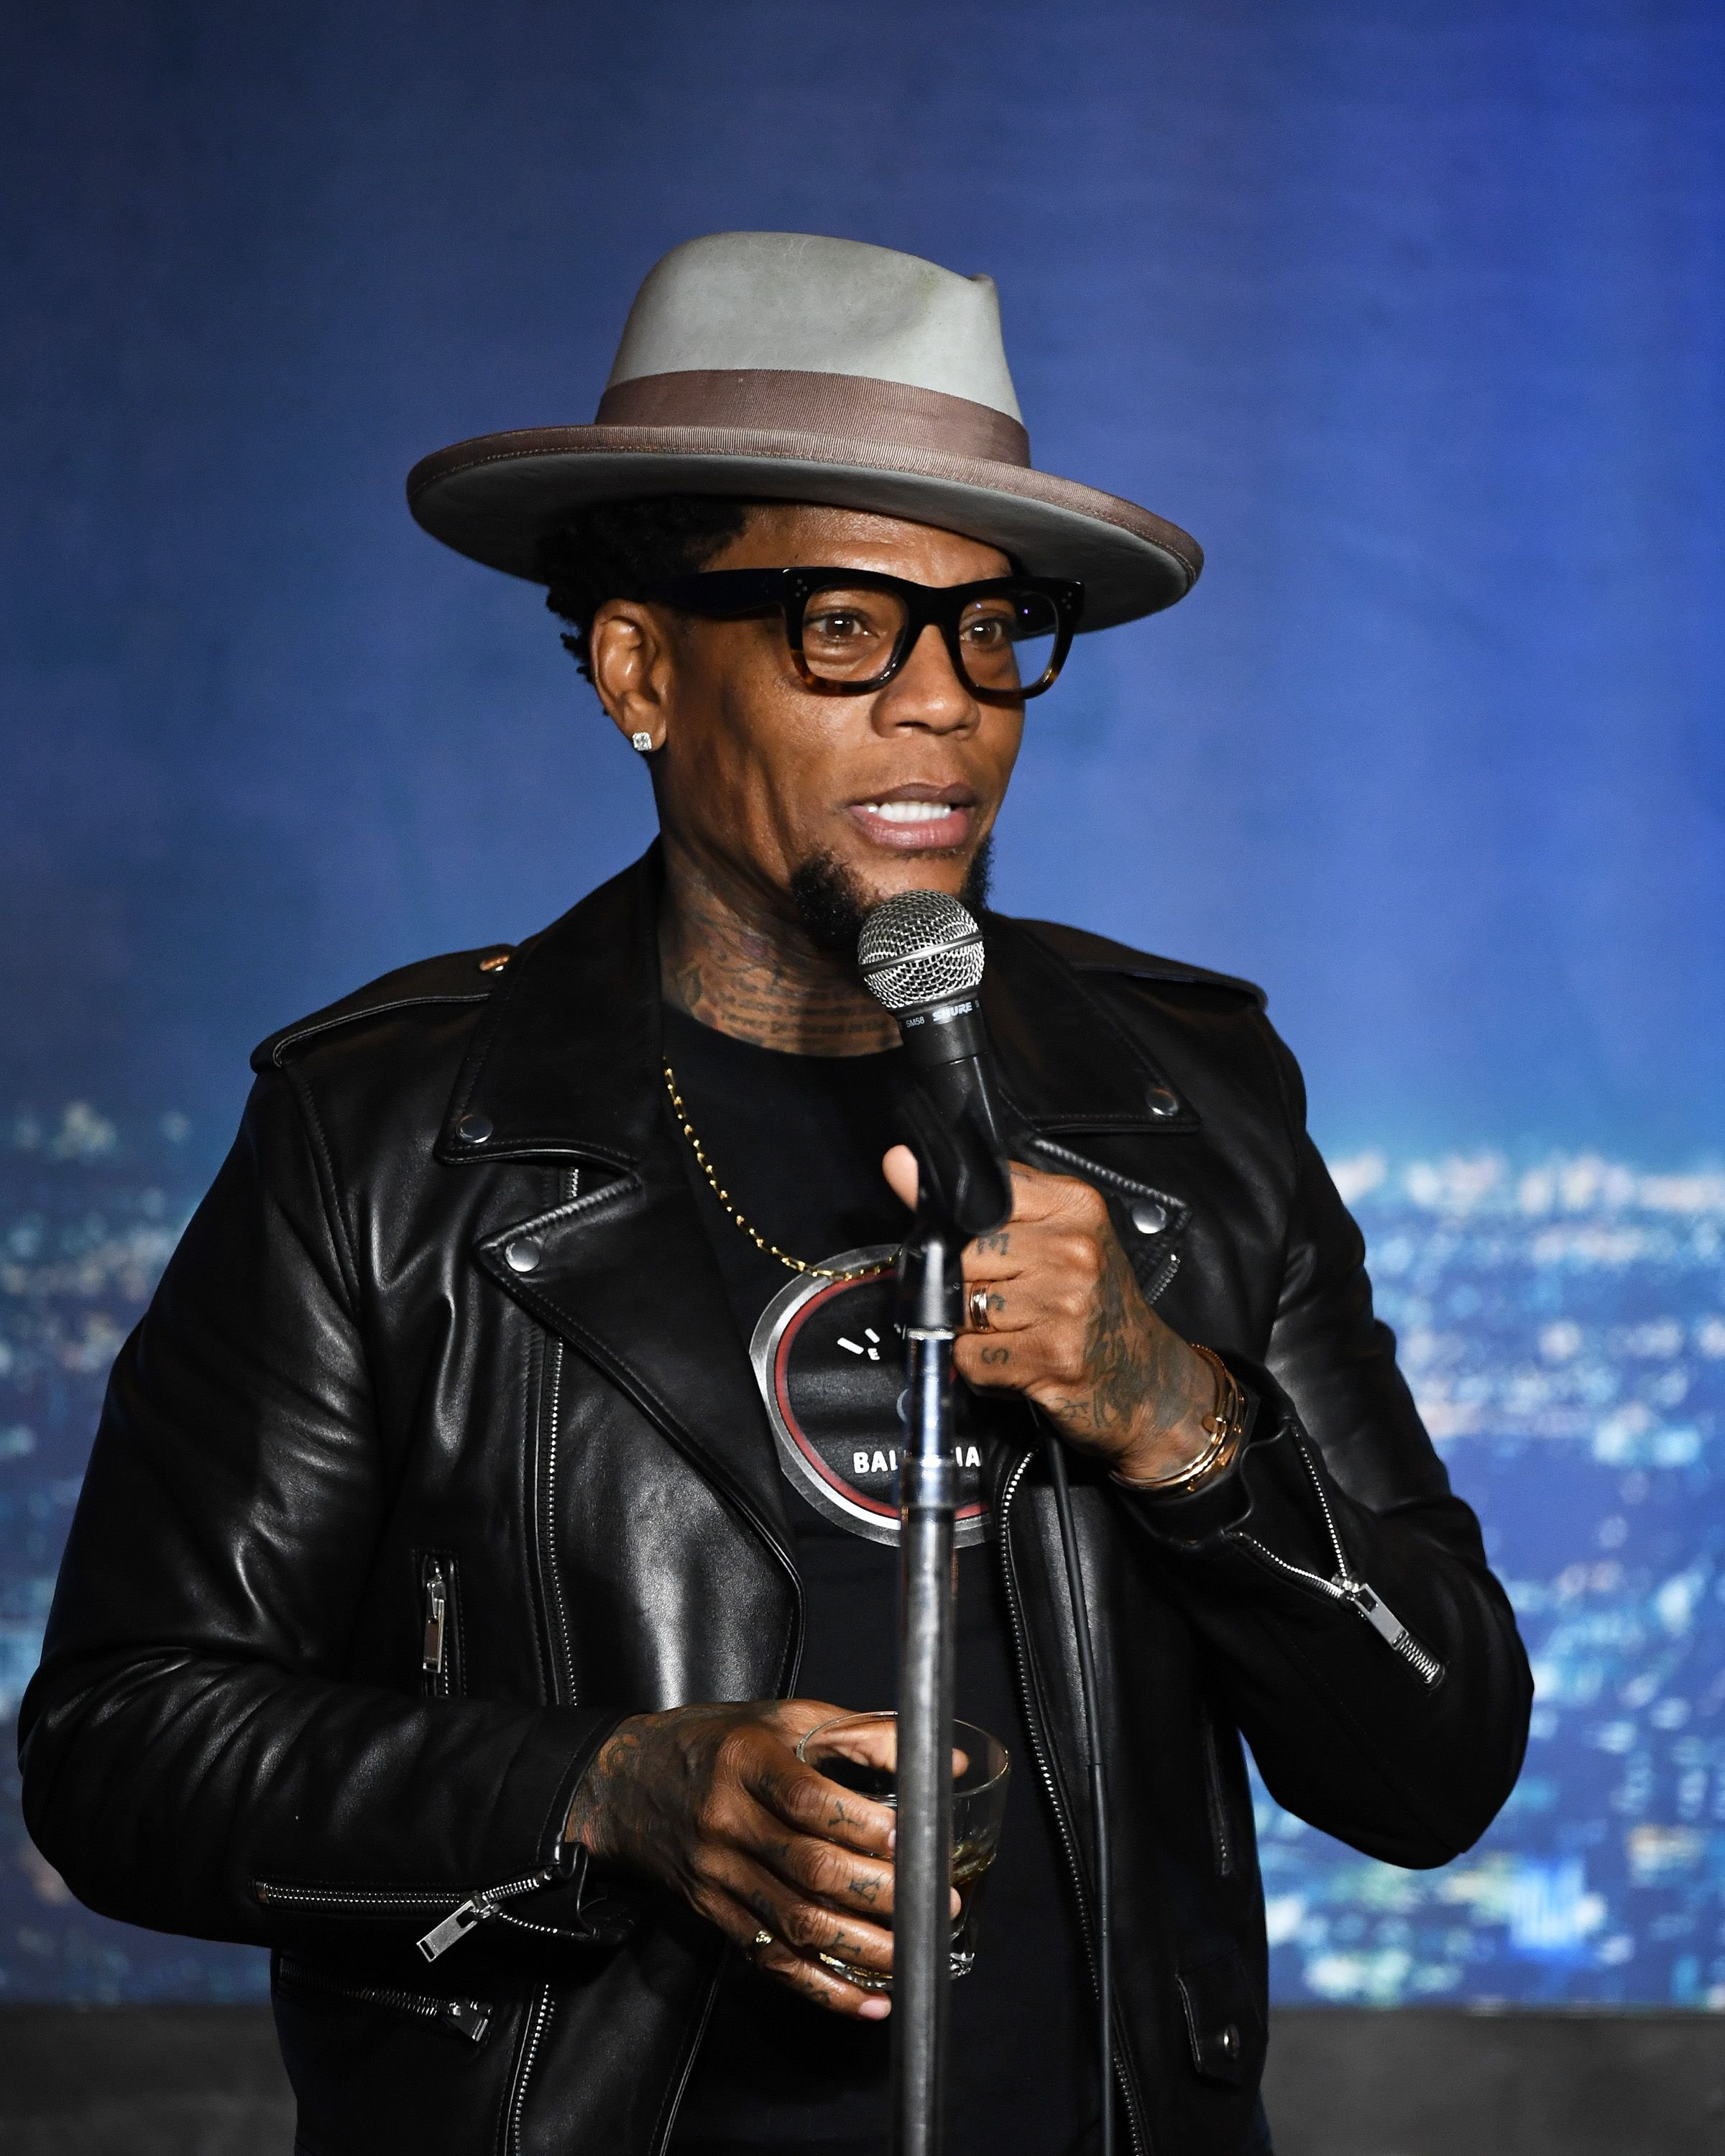 D.L. Hughley during his performance at The Ice House Comedy Club on February 29, 2020 in Pasadena, California. | Source: Getty Images